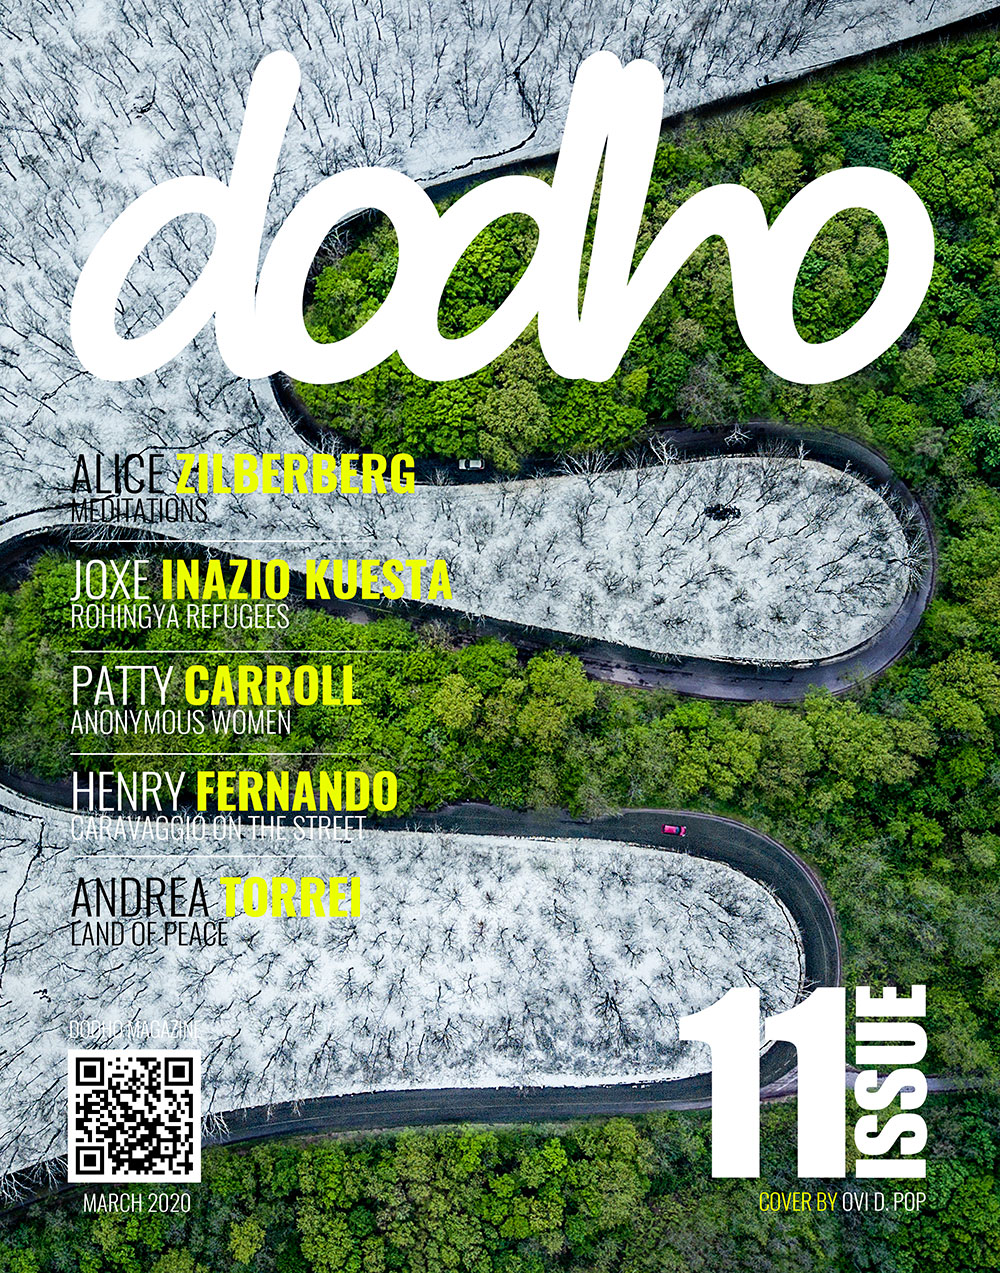 https://www.dodho.com/wp-content/uploads/2020/03/cover11.jpg